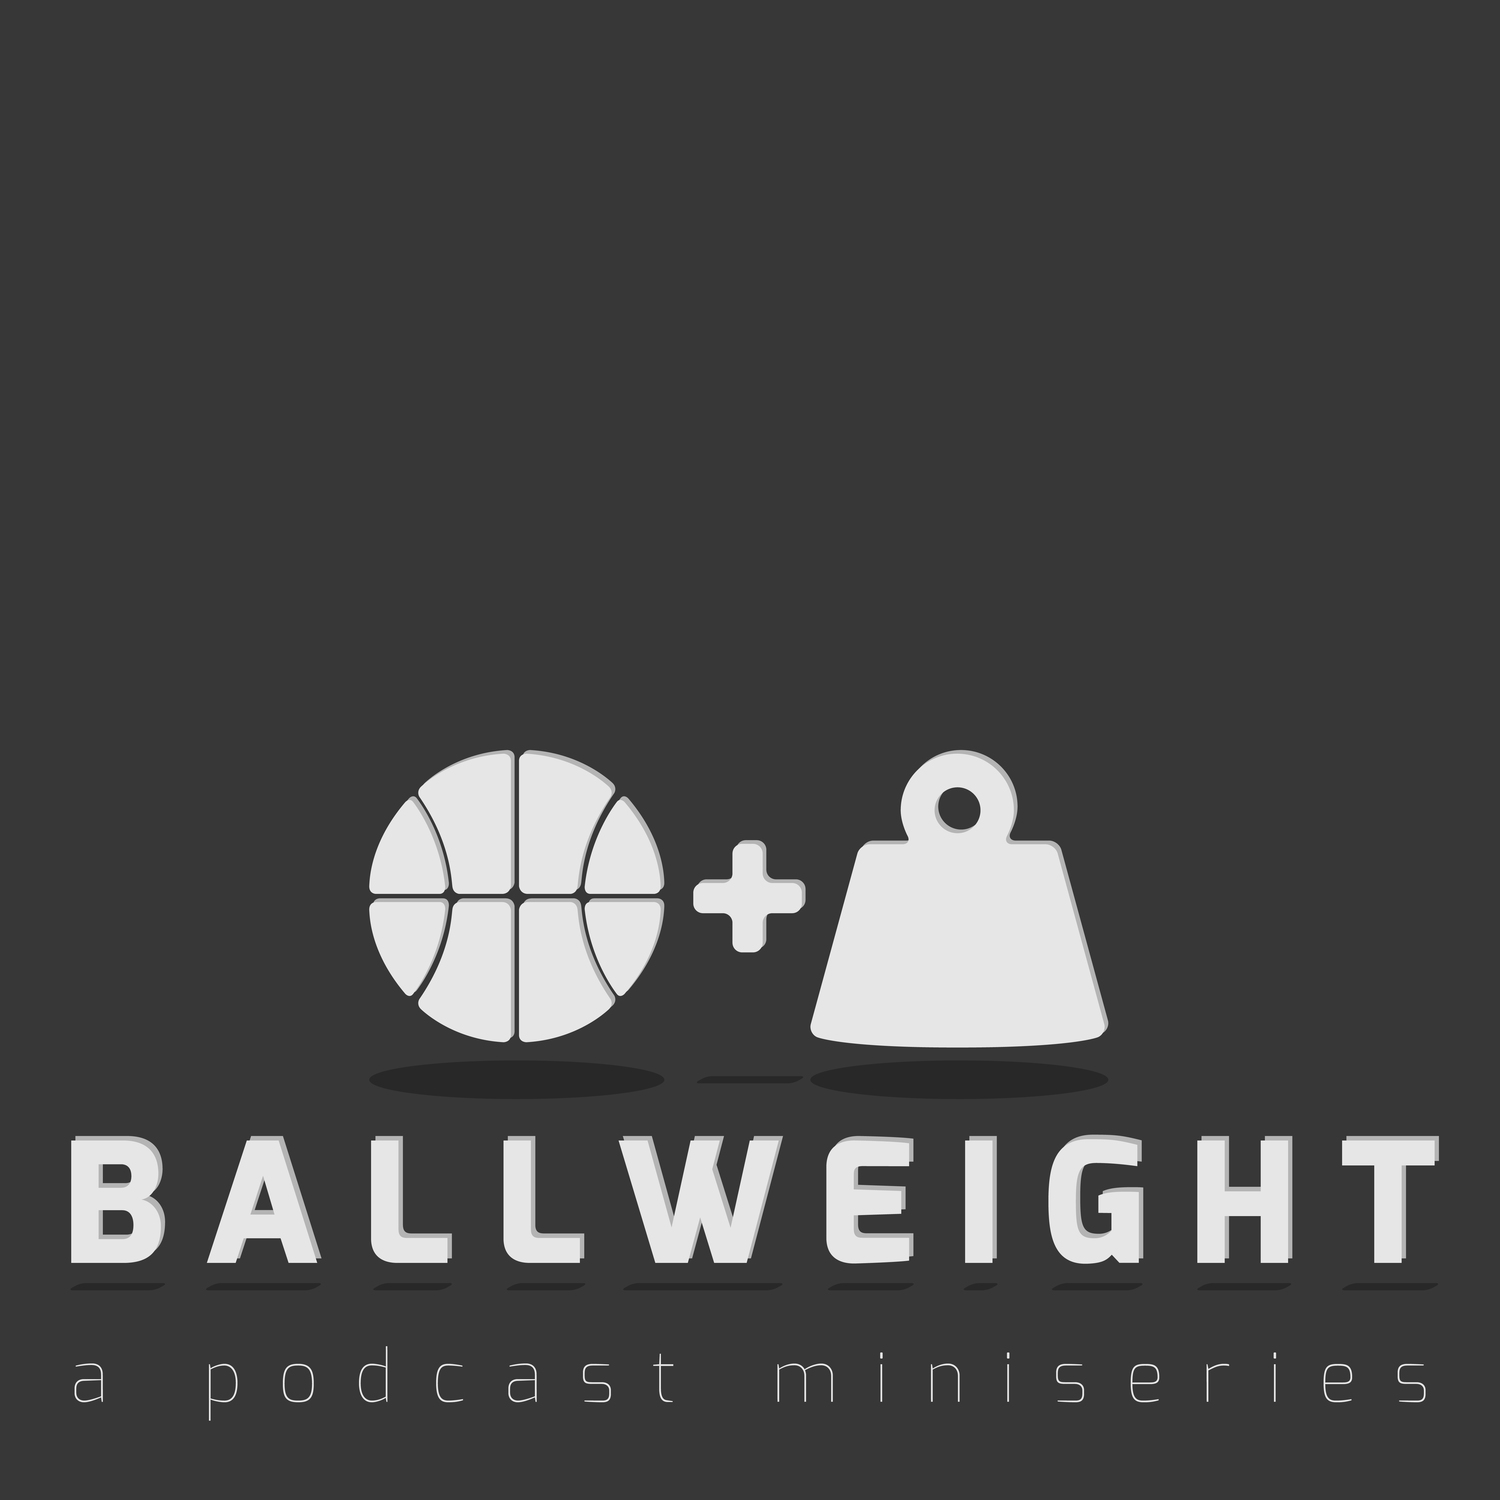 ballweight: the first fictional podcast miniseries